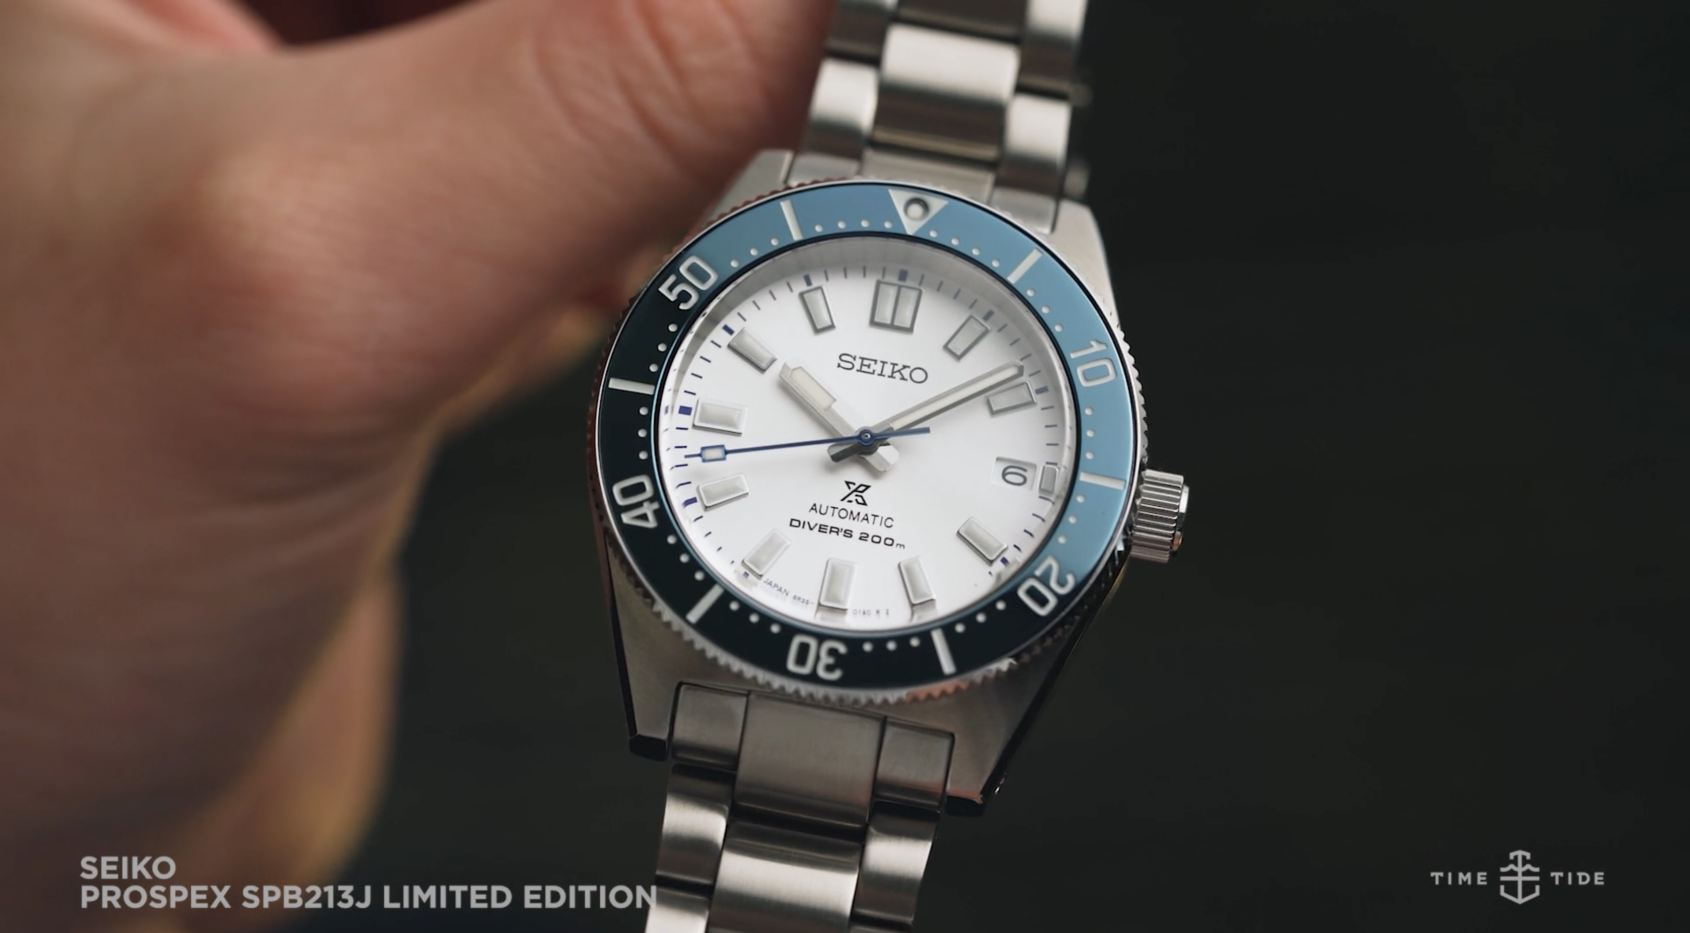 HANDS-ON: The Seiko Prospex SPB213J1 is a modern diver offering versatility and value